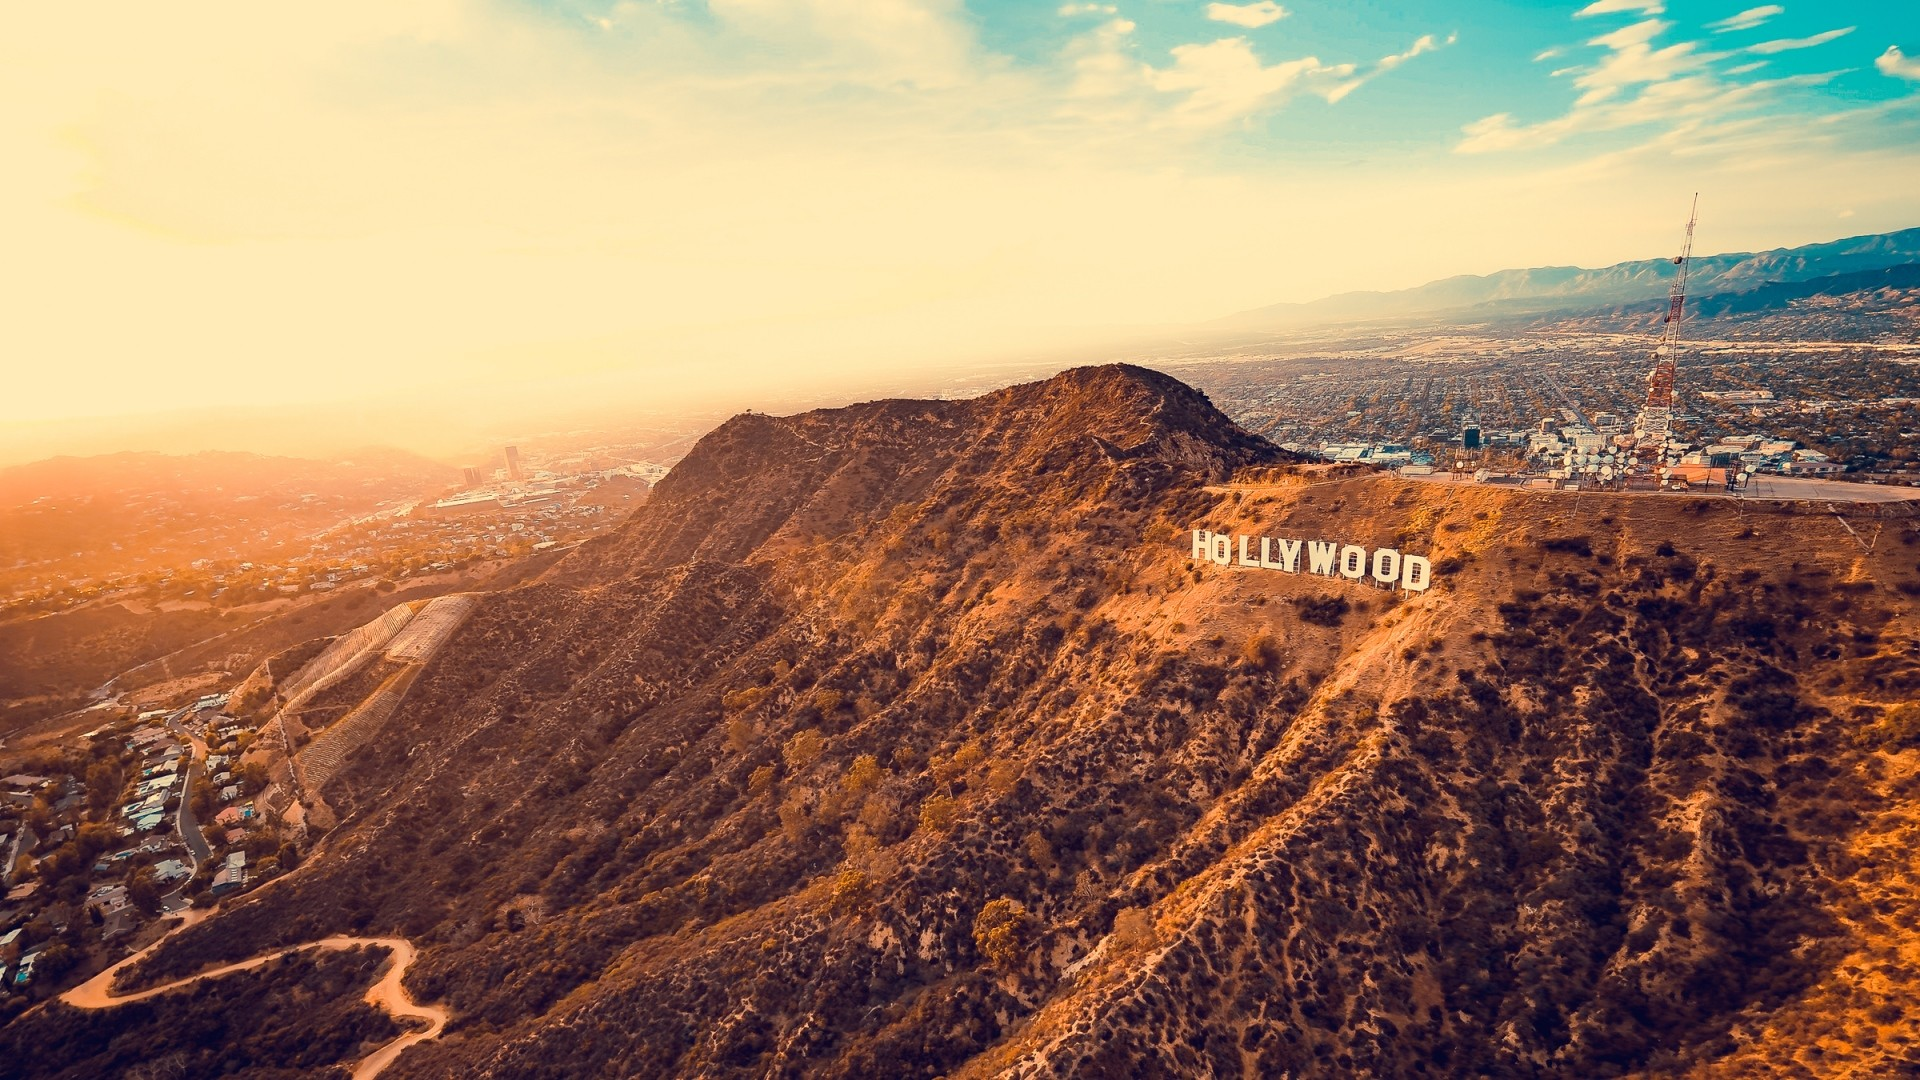 Wallpaper hollywood, mountains, los angeles